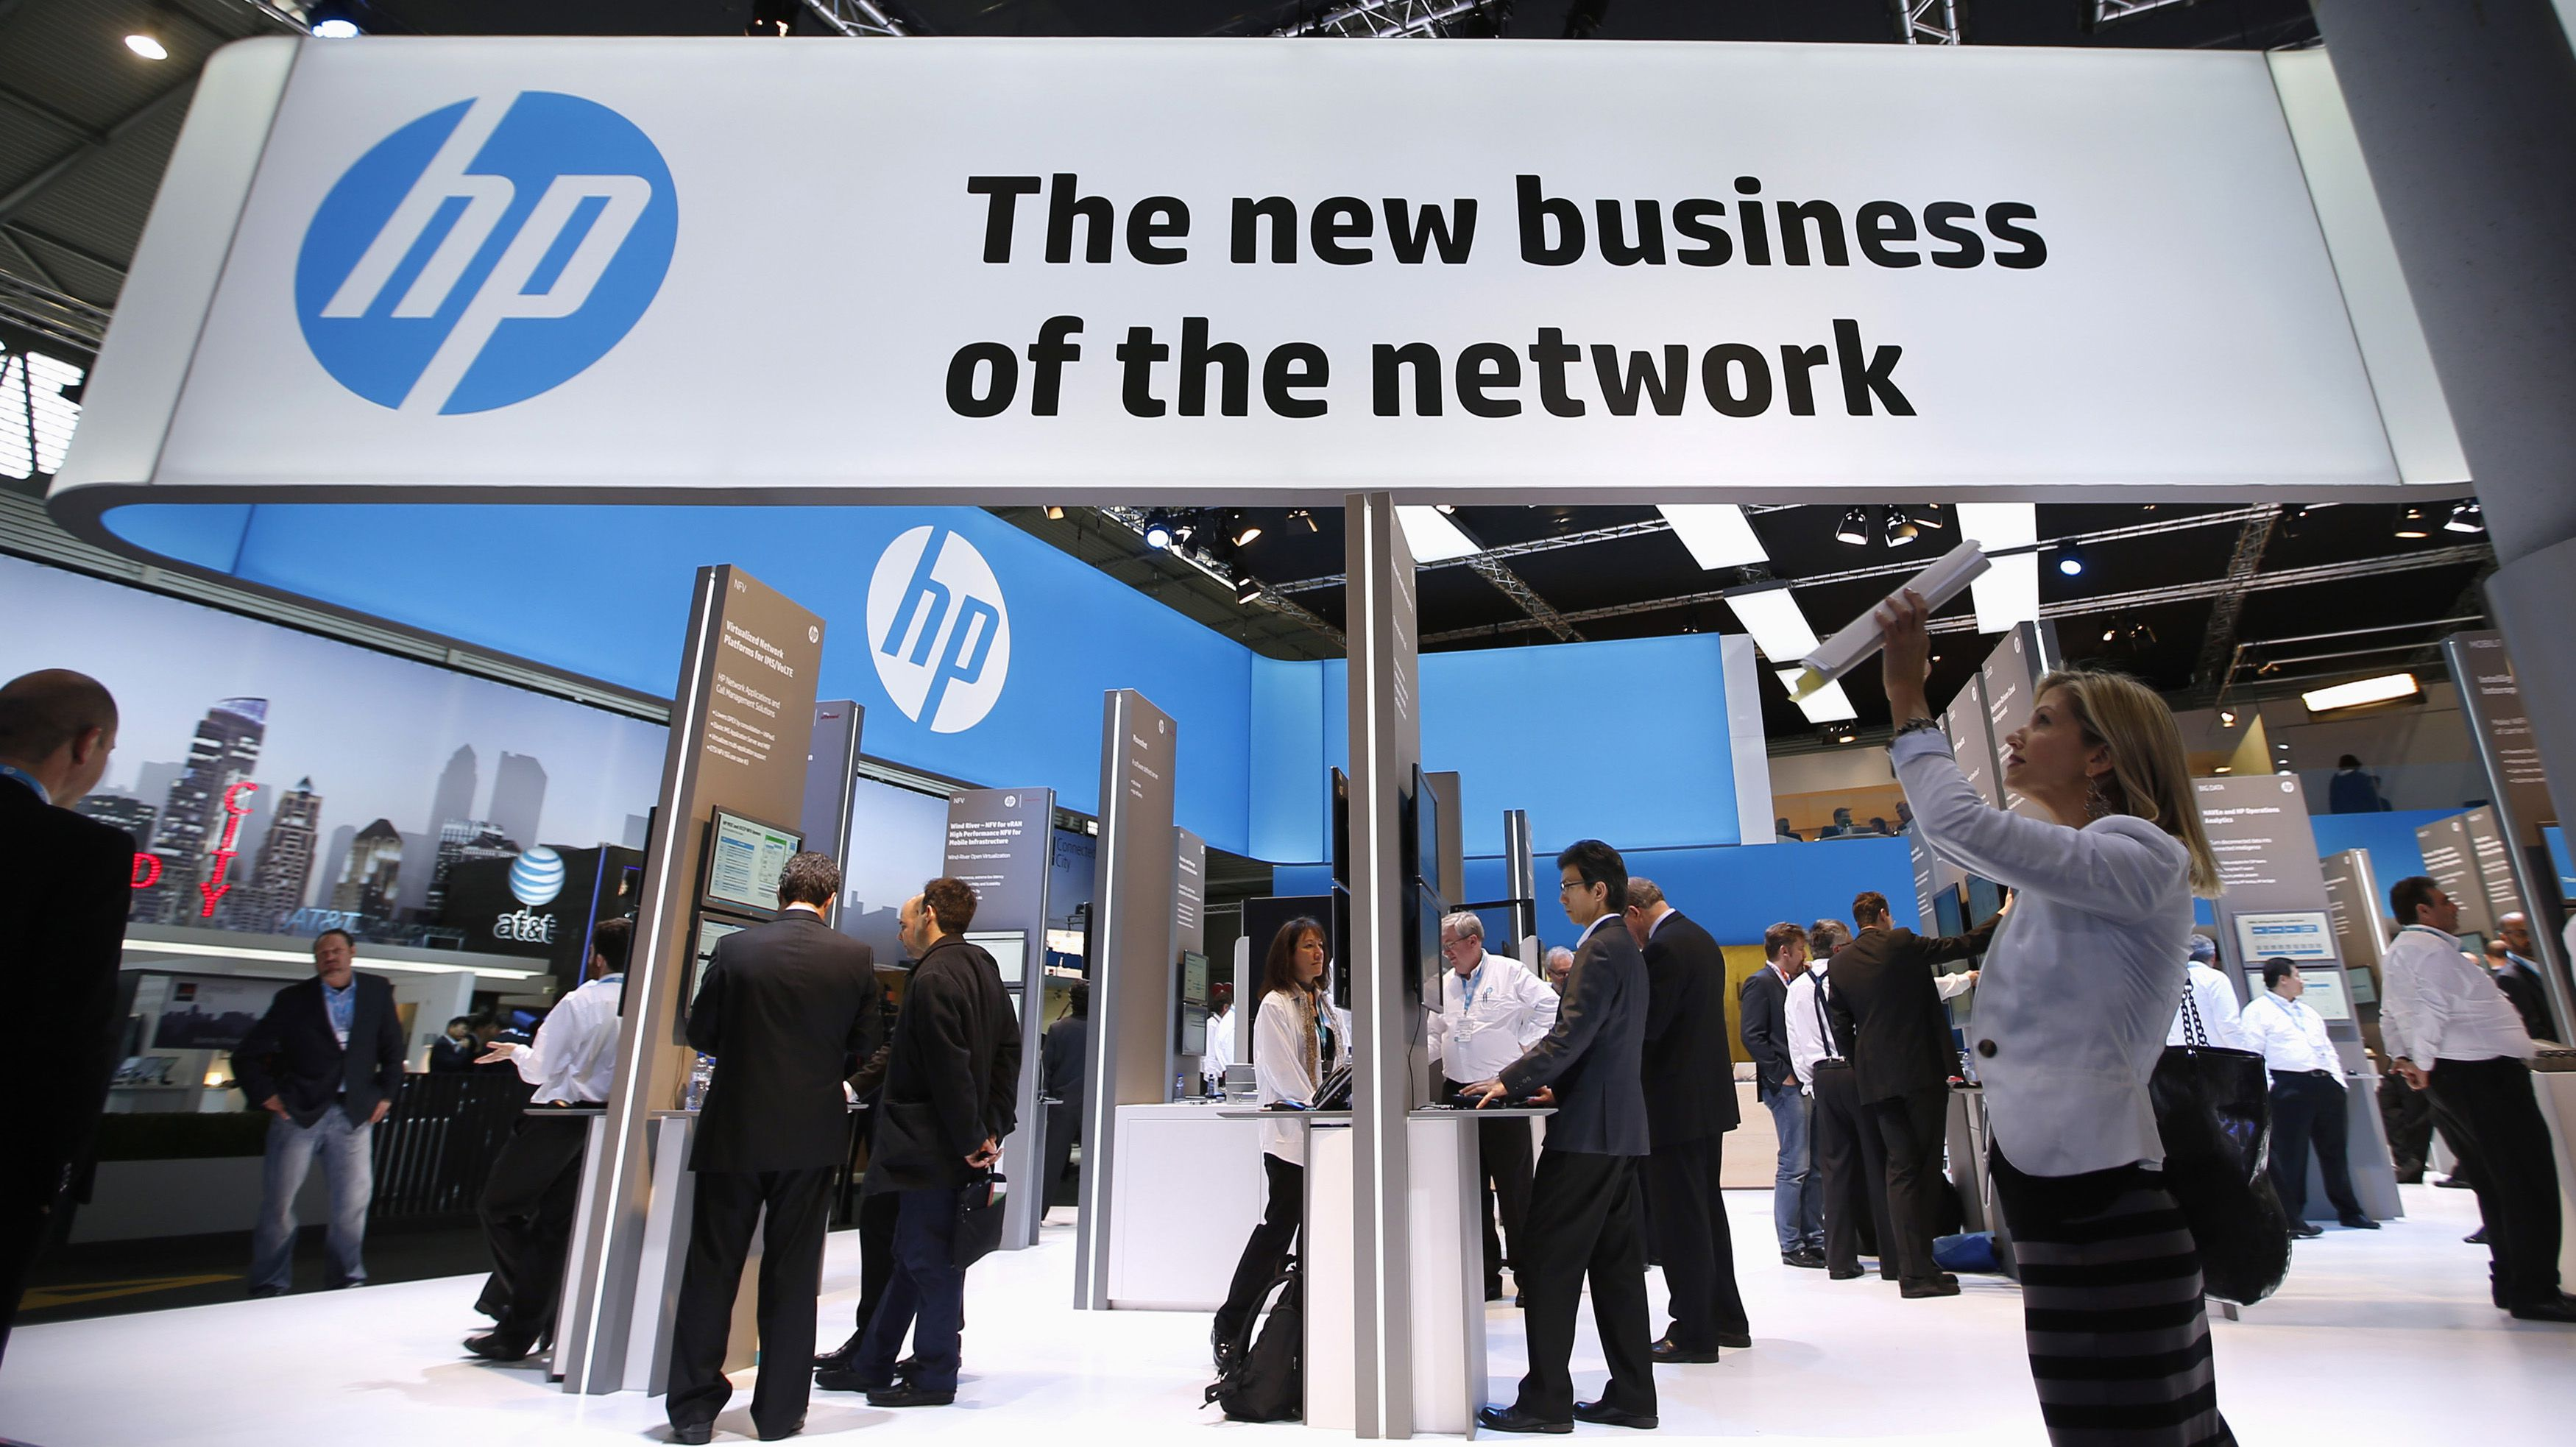 A visitor takes a photo with a tablet in front of a Hewlett-Packard (HP) stand at the Mobile World Congress in Barcelona, February 27, 2014. REUTERS/Albert Gea (SPAIN - Tags: BUSINESS TELECOMS SCIENCE TECHNOLOGY) - RTR3FSN7